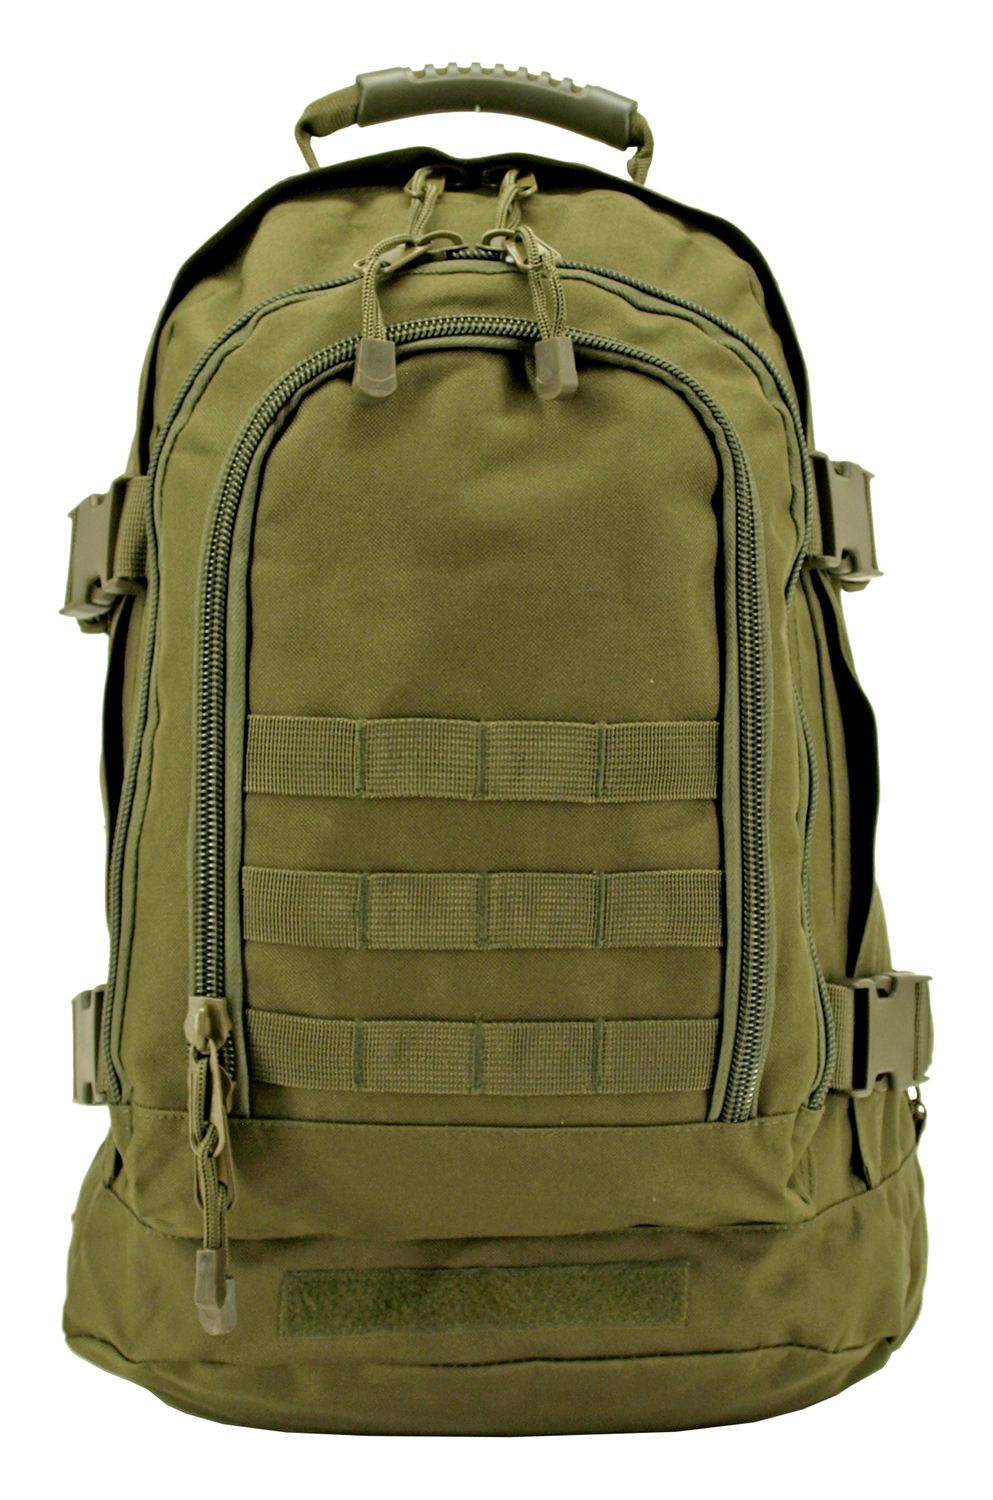 Expandable Tactical Backpack - Olive Green